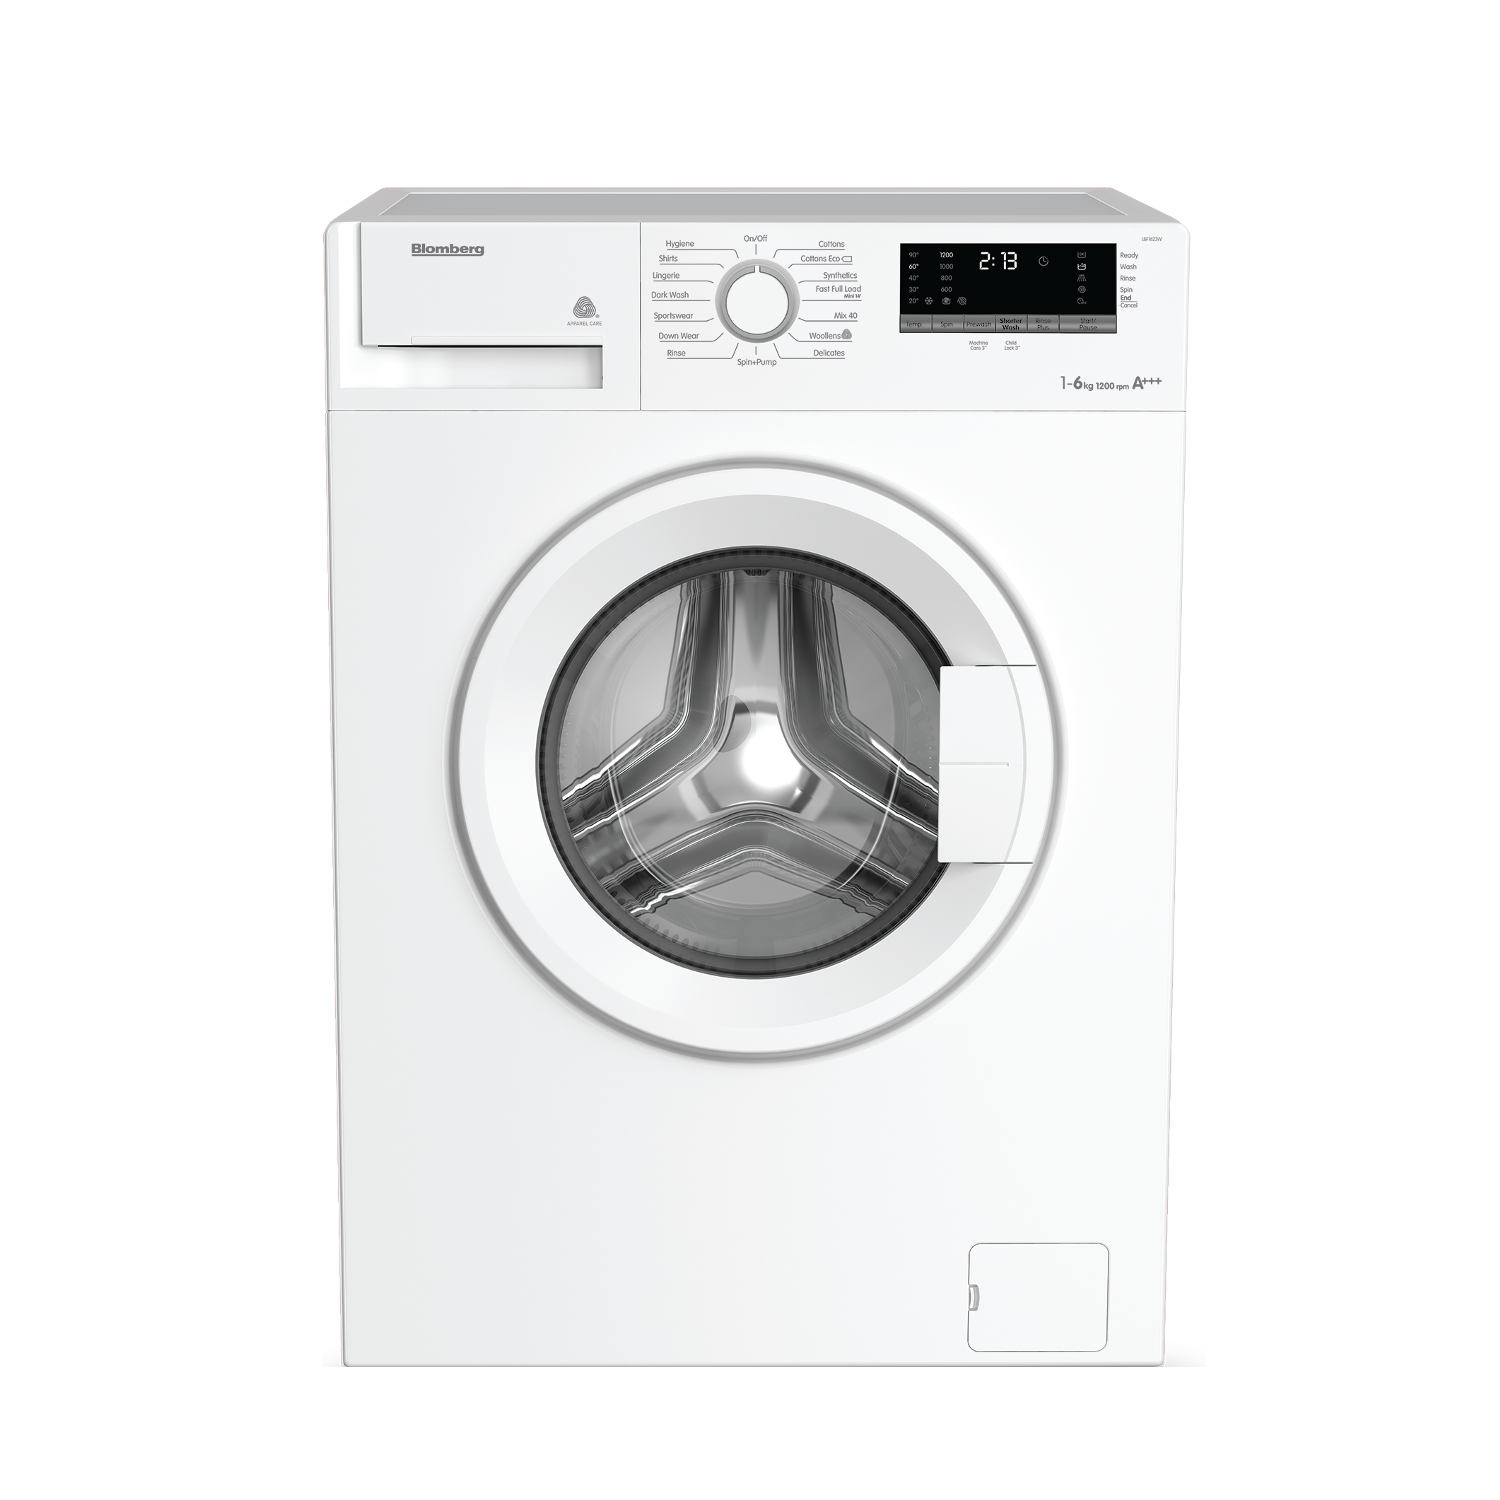 Indesit Iwdc 6125 Find Every Shop In The World Selling 1200 Spin 6kg At Pricepi